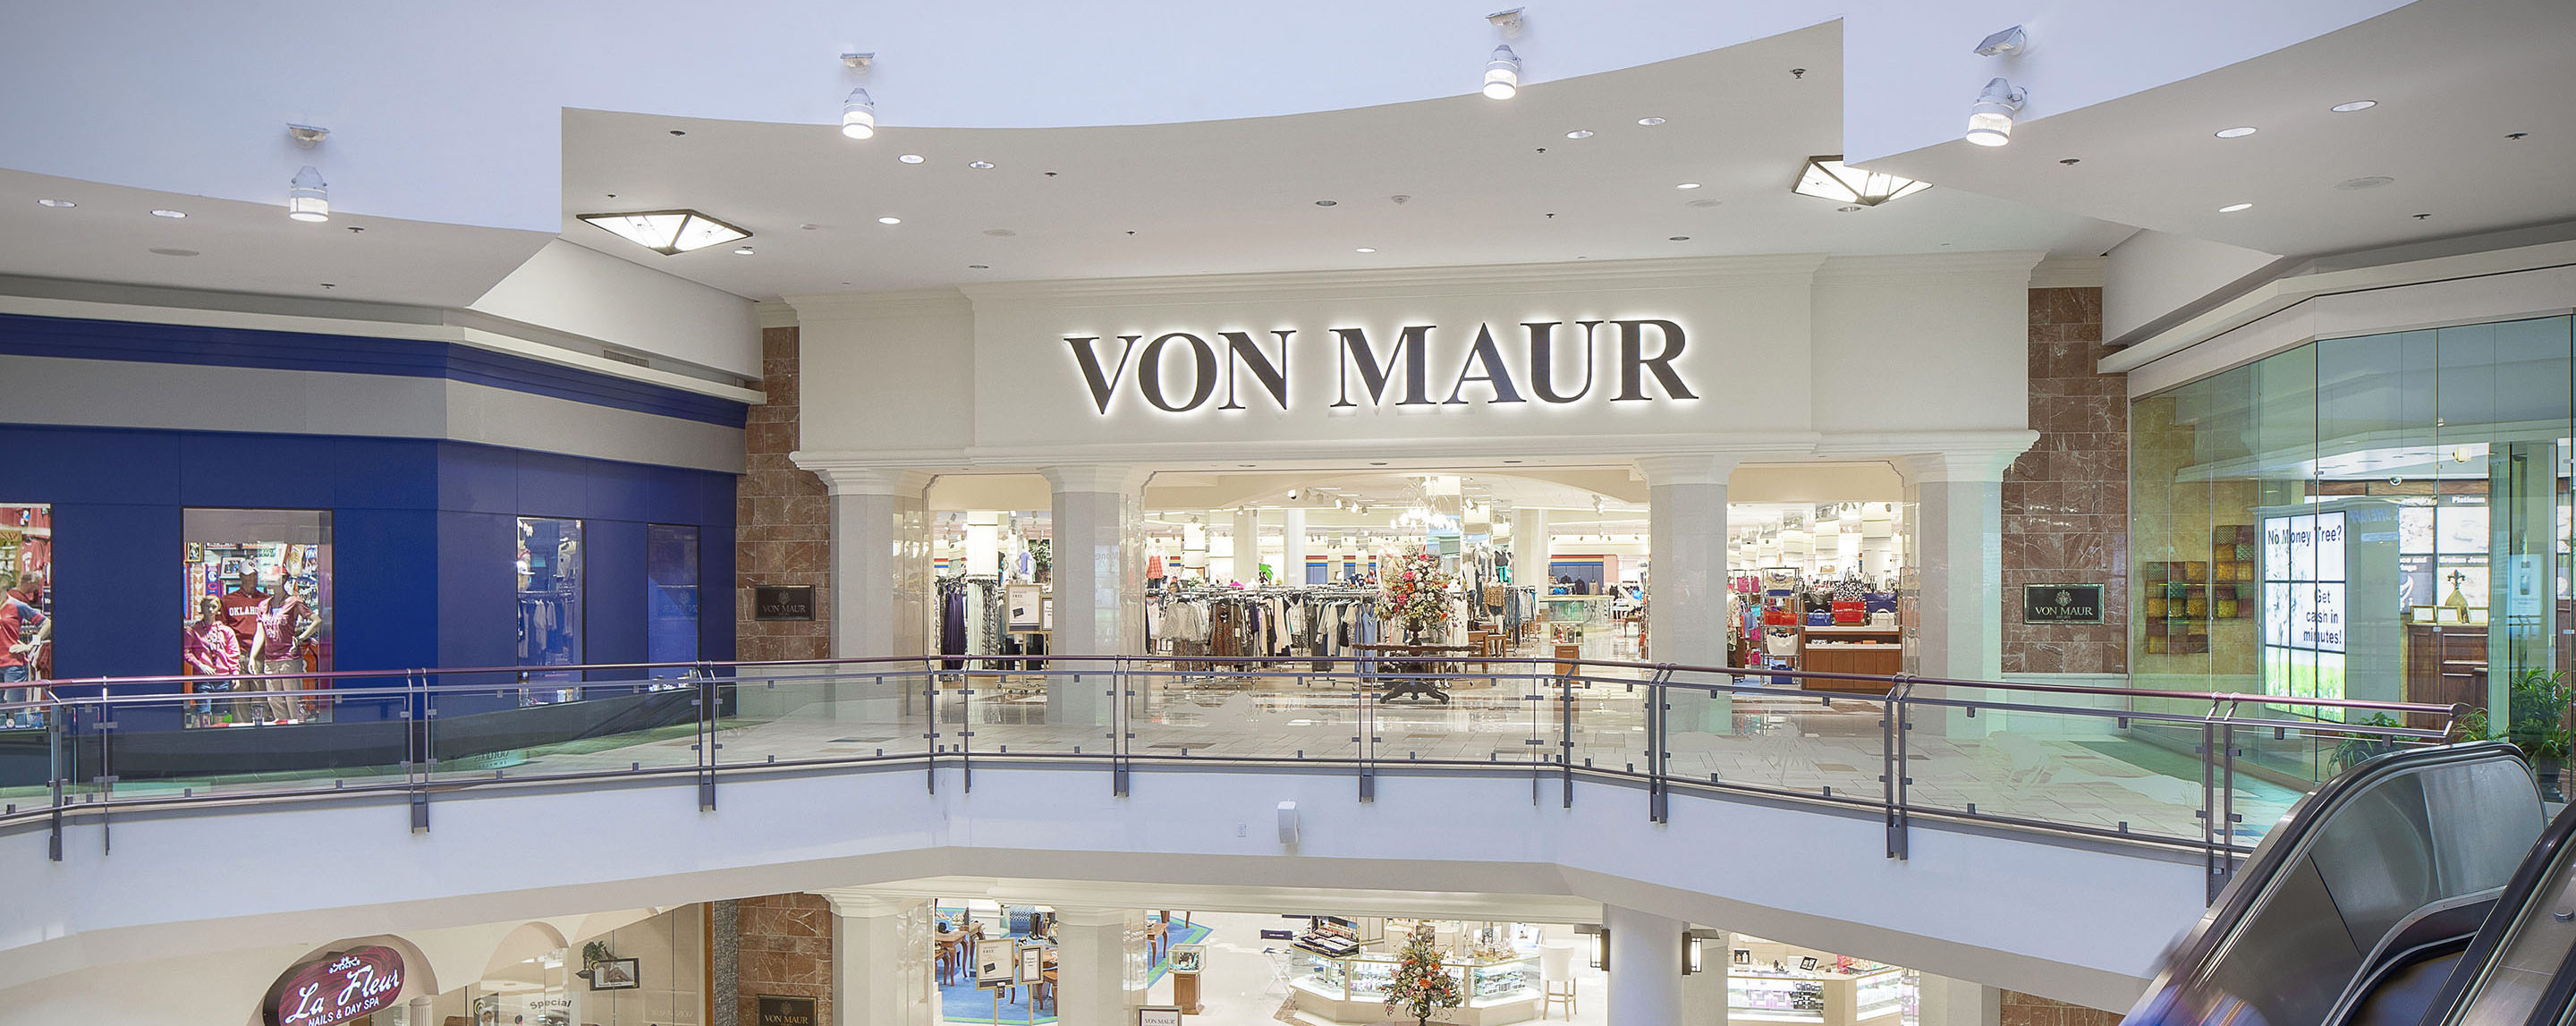 A brightly lit Von Maur department store entrance can be seen on the top level of the Quail Springs Mall.